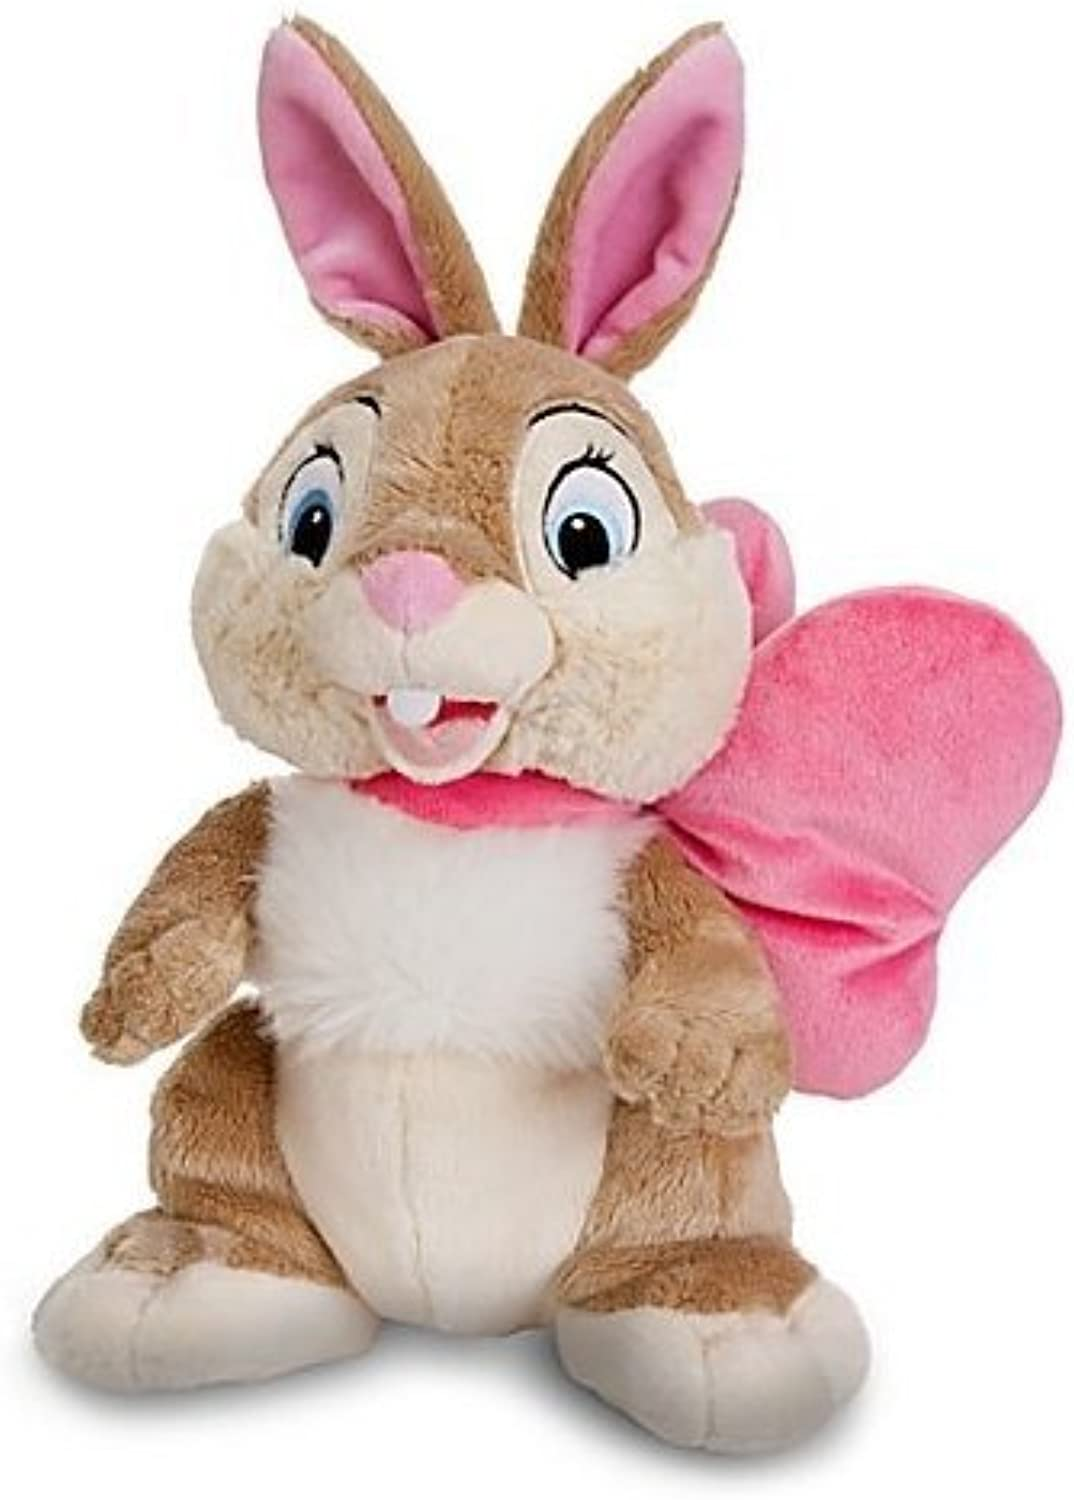 Disney Easter Bow Miss Bunny Plush Doll